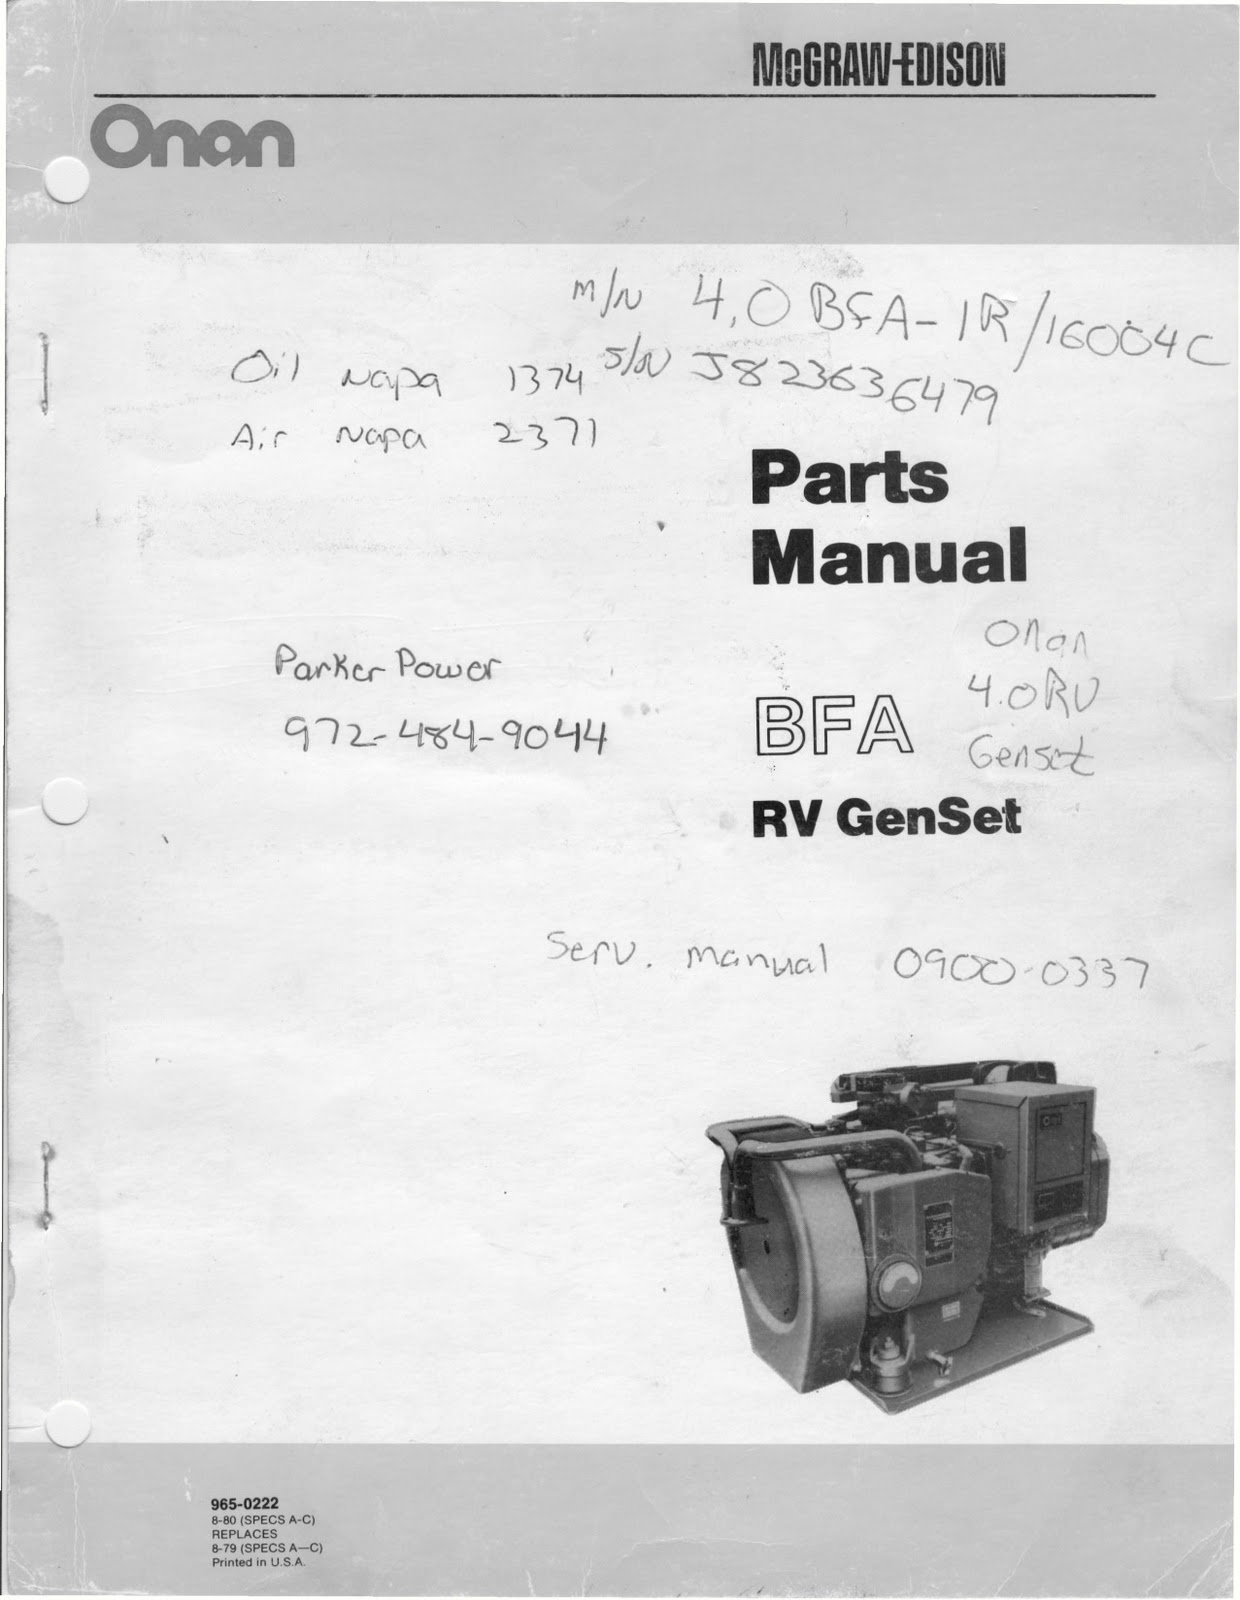 30DECB6 1992 Fleetwood Rv Wiring Diagram | Wiring Resources on